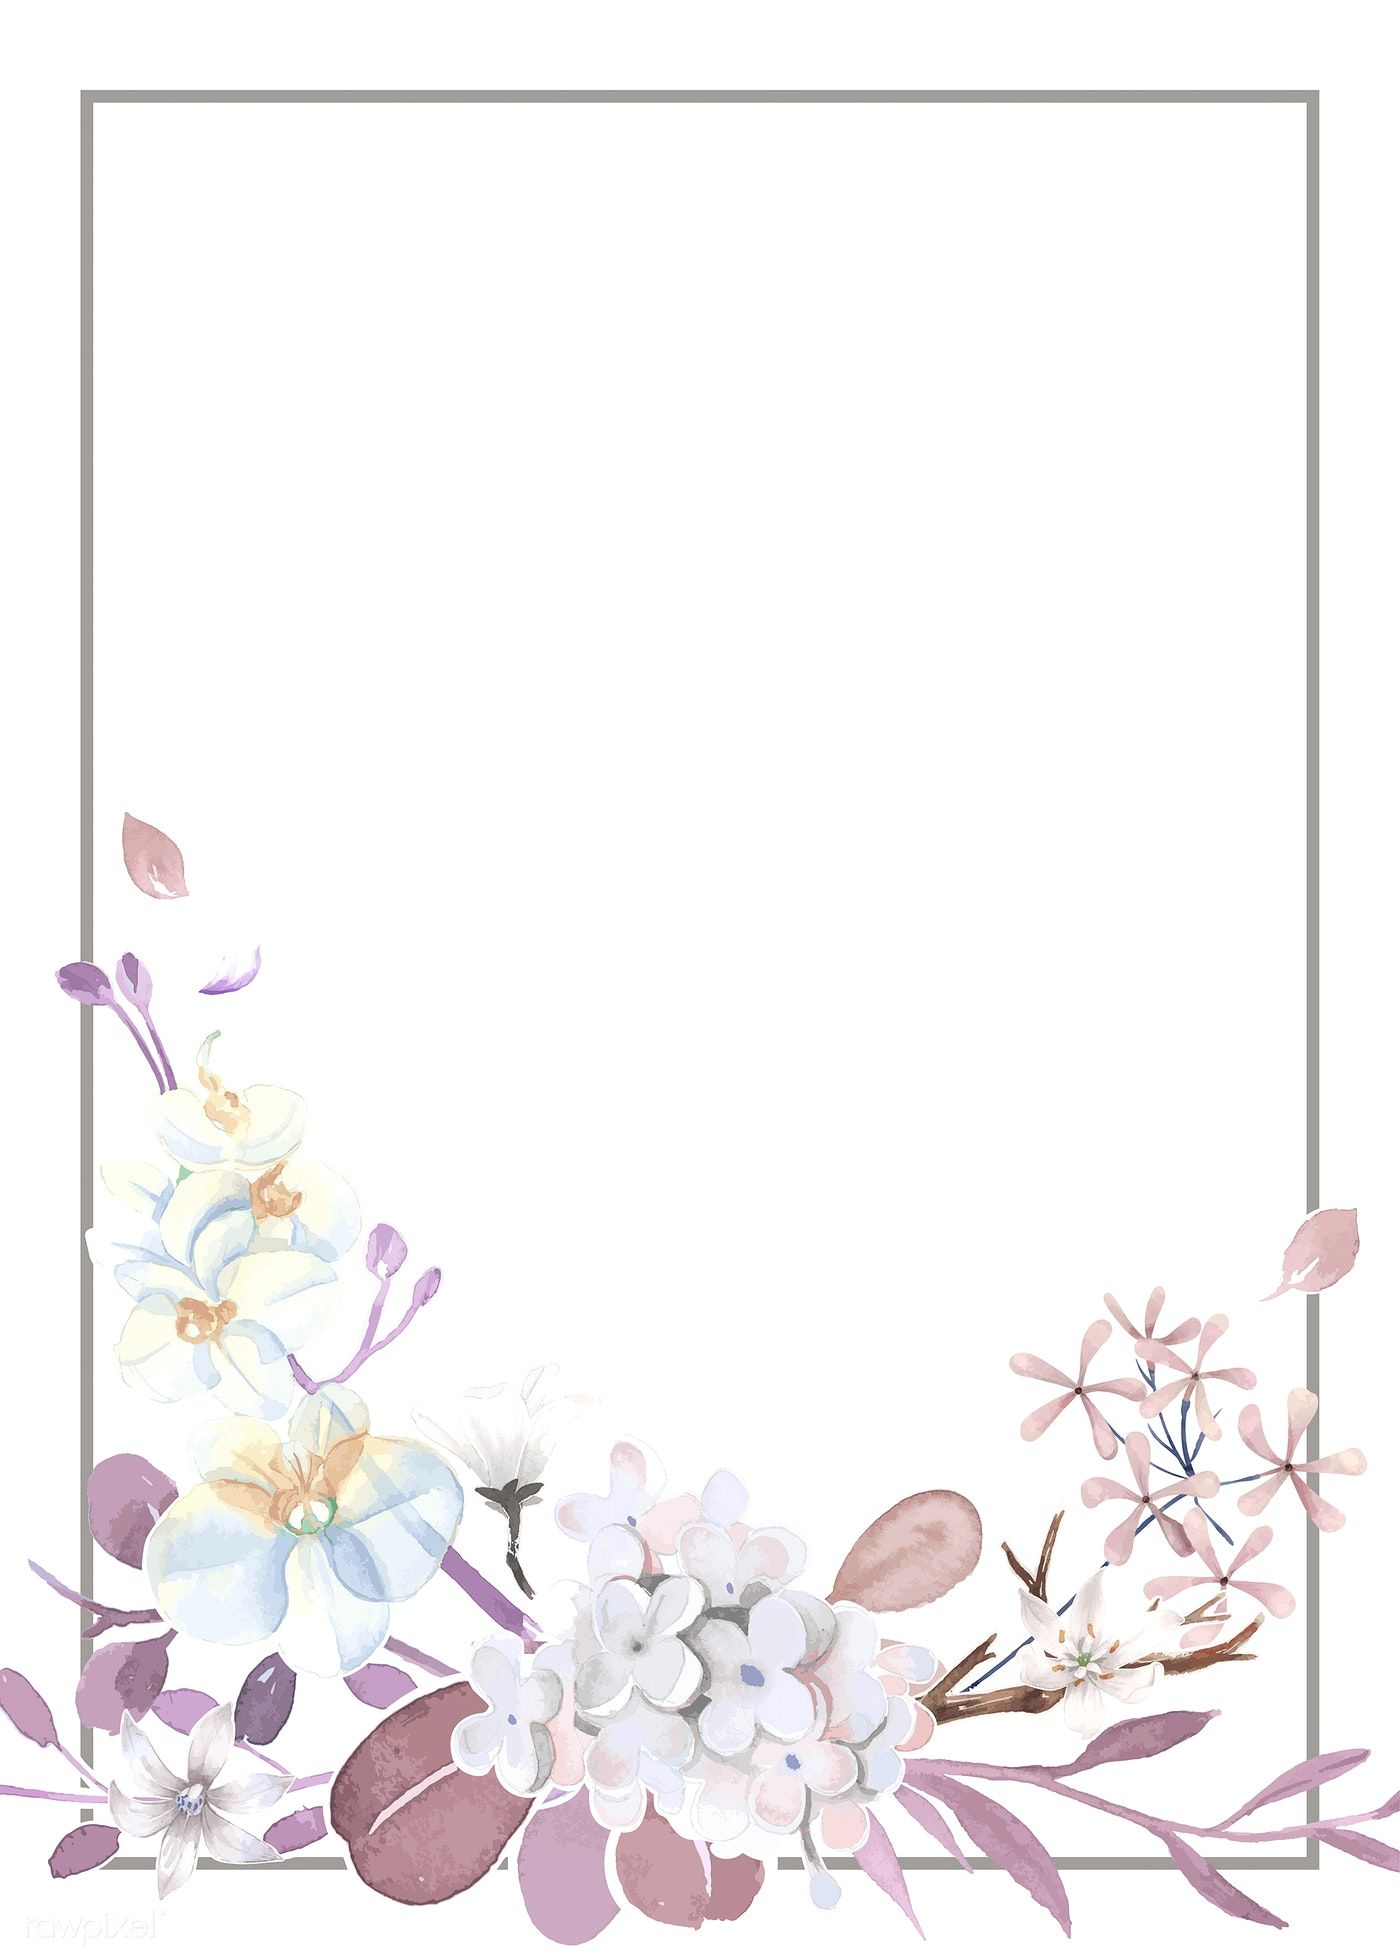 Purple And Pink Greeting Card Free Image By Rawpixel Com Free Greeting Card Templates Greeting Card Template Wedding Greeting Cards